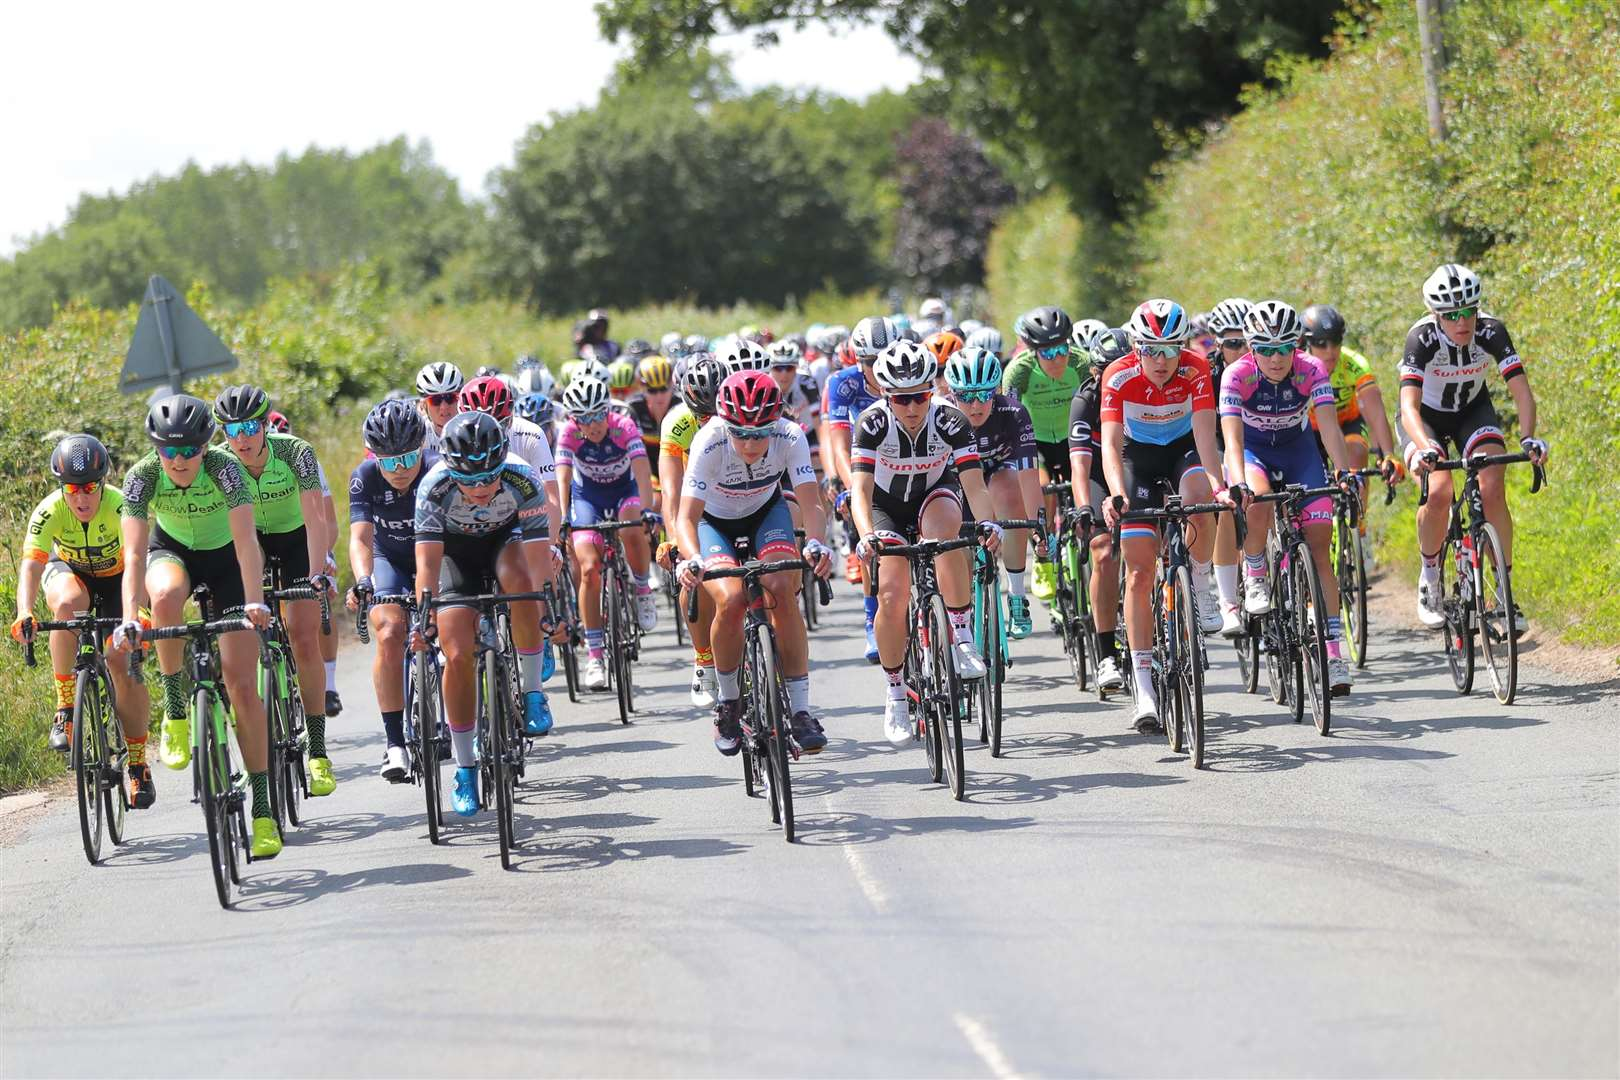 Picture by SWpix.com 13/06/2018 - Cycling - The 2018 OVO Energy Women's Tour - Stage 1: Framlingham to Southwold - Suffolk, England - Race rolls out of Framlingham. (12008275)